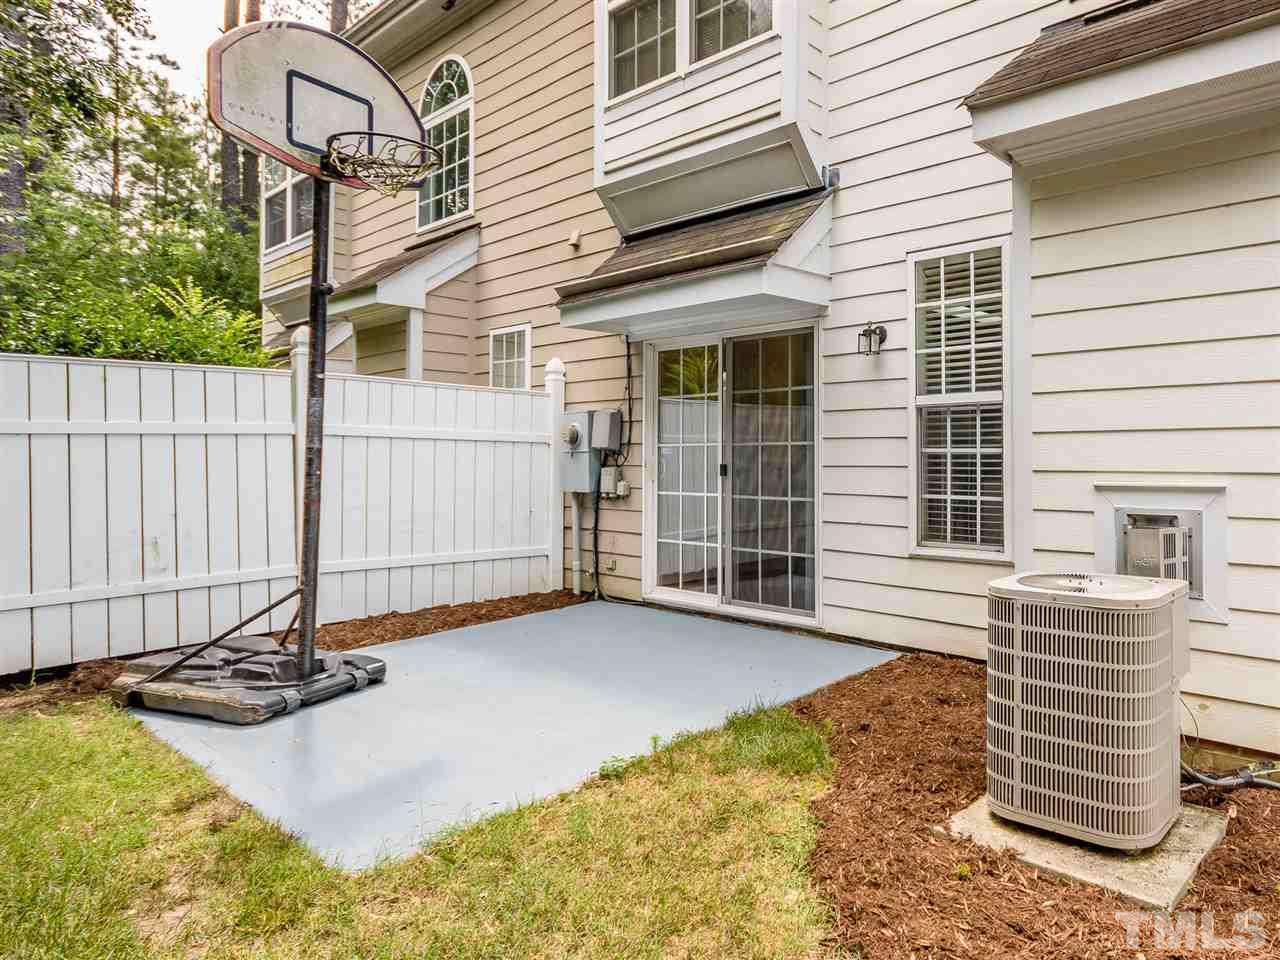 Patio area! Basketball hoop can convey! White fences on either side and greens in the rear! Your own private oasis!